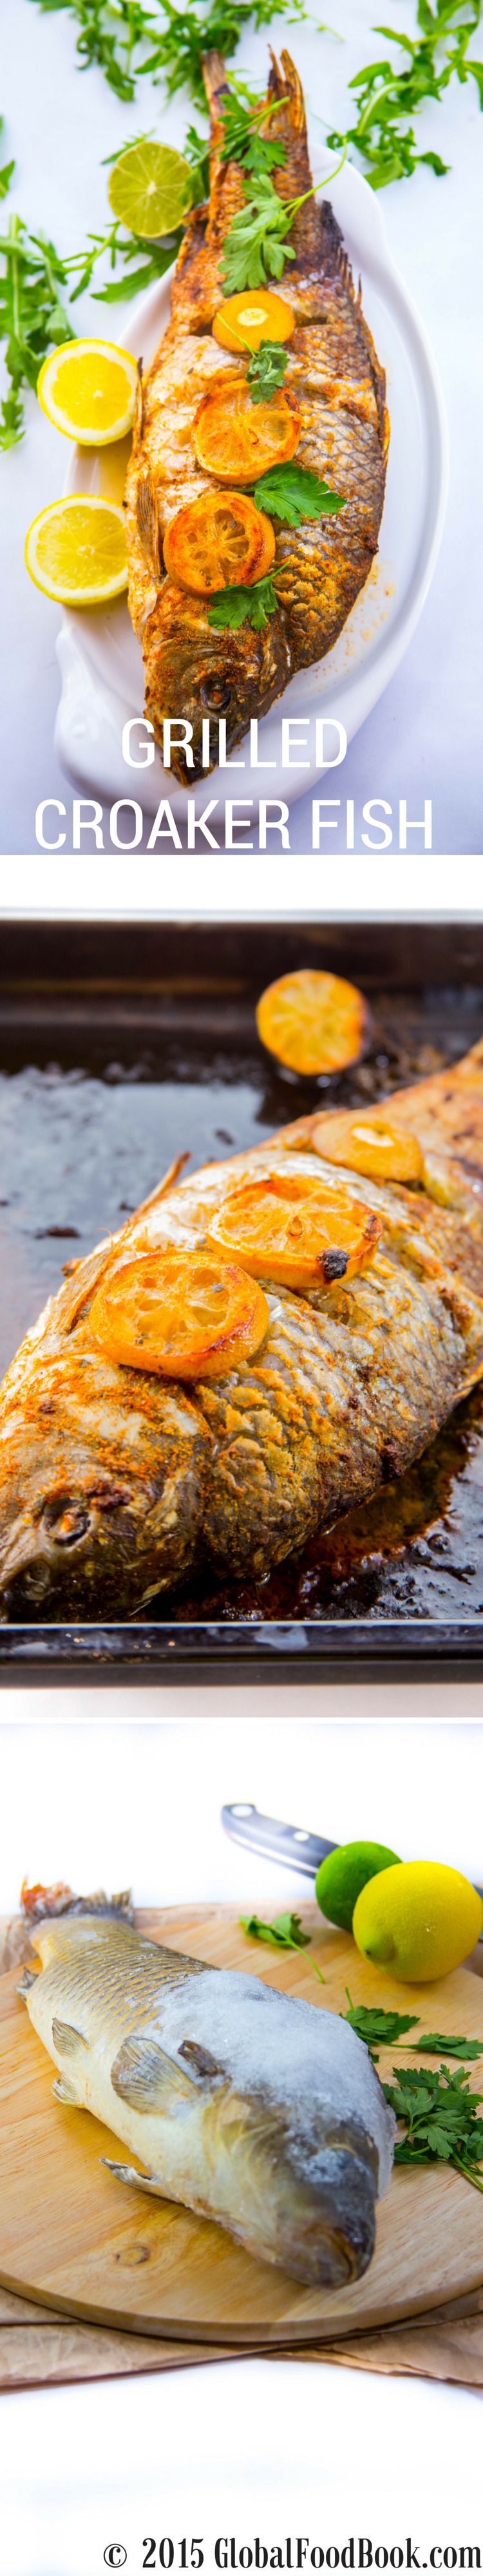 grilled croaker fish recipe